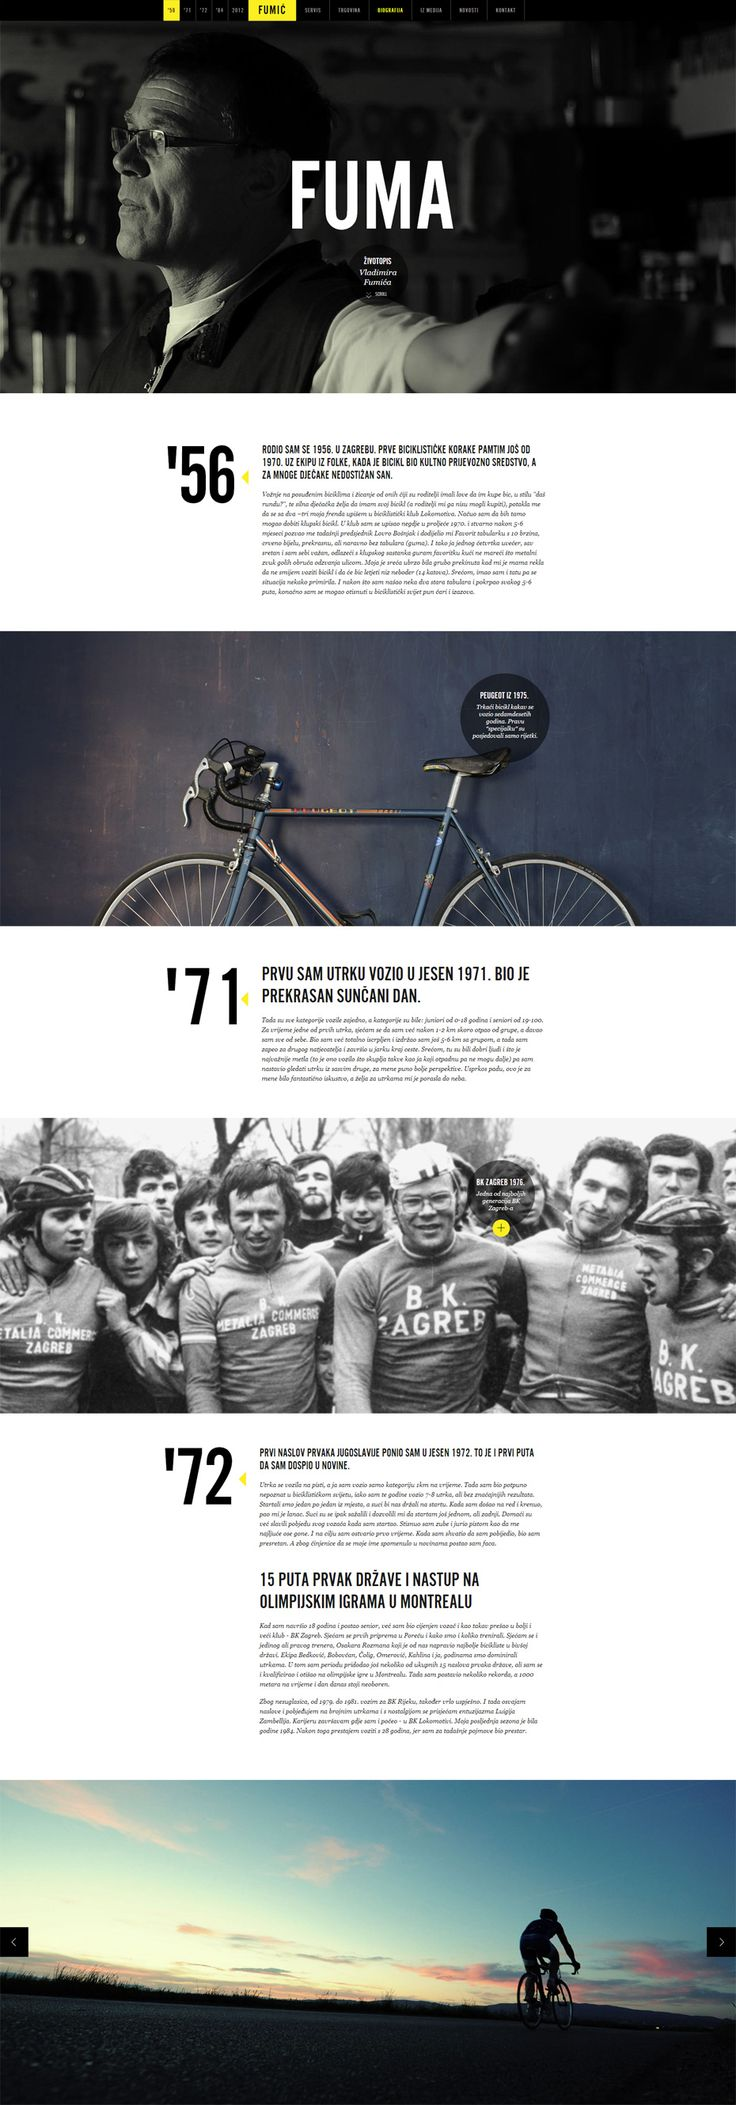 Case Study: Creating a Website for a Cycling Legend #webdesign #it #web #design #layout #userinterface